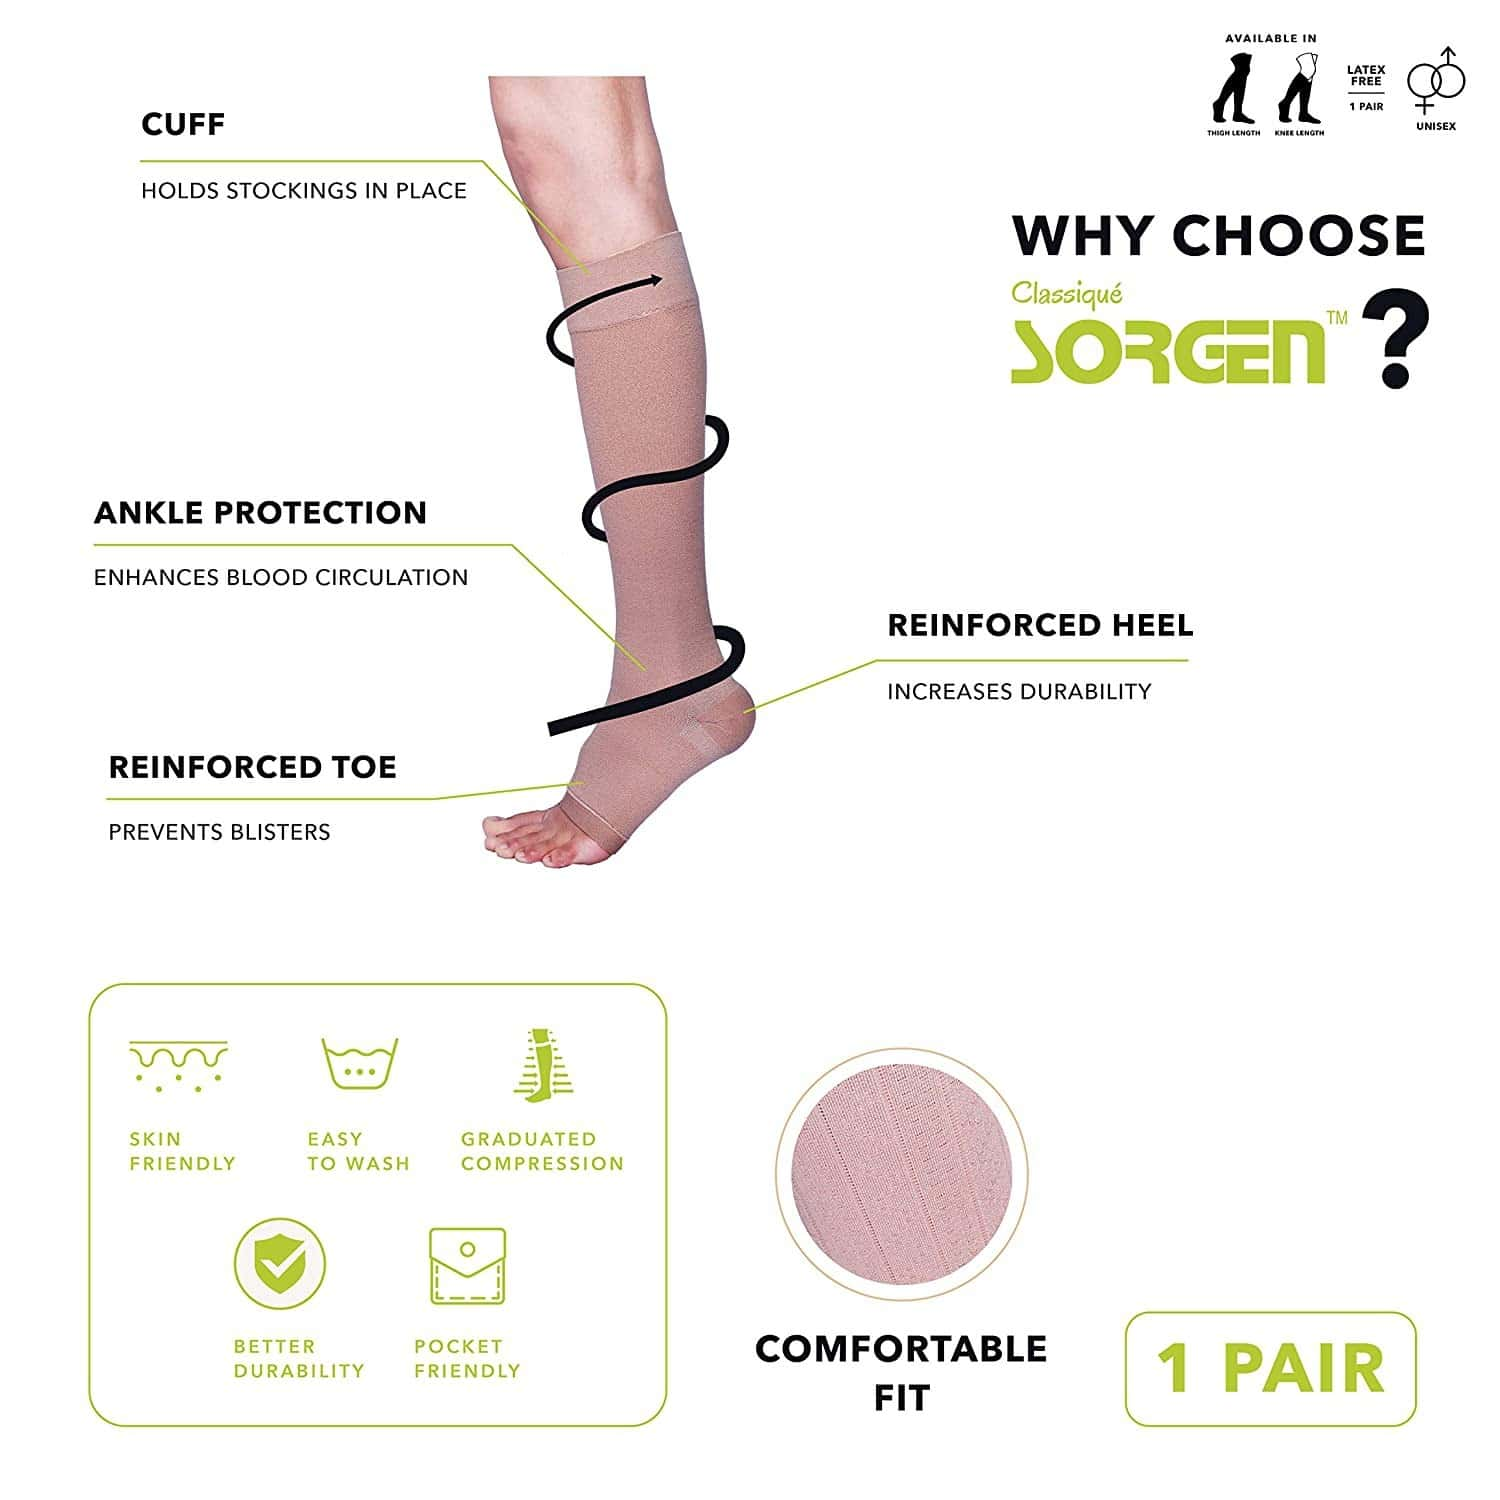 Sorgen Classique (lycra) Medical Compression Stockings For Varicose Veins Class 2 Knee Length In Eco-friendly Zip Pouch - Large